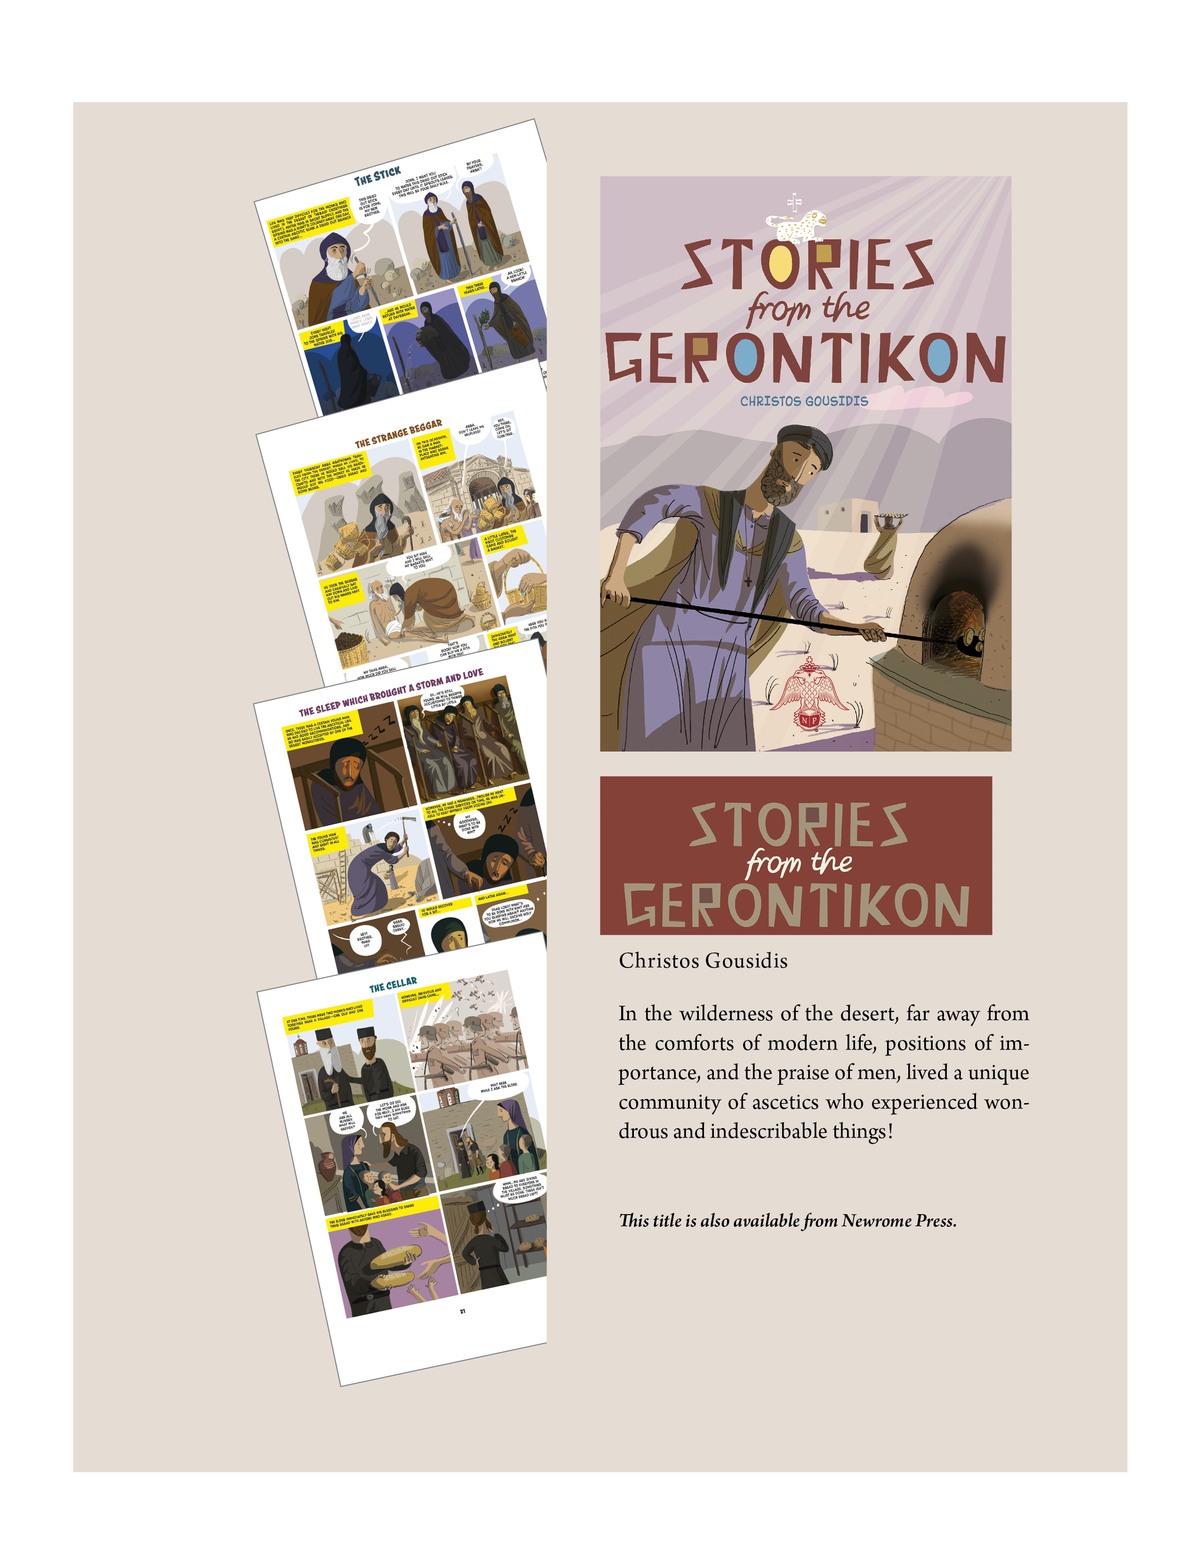 Stories from the Gerontikon